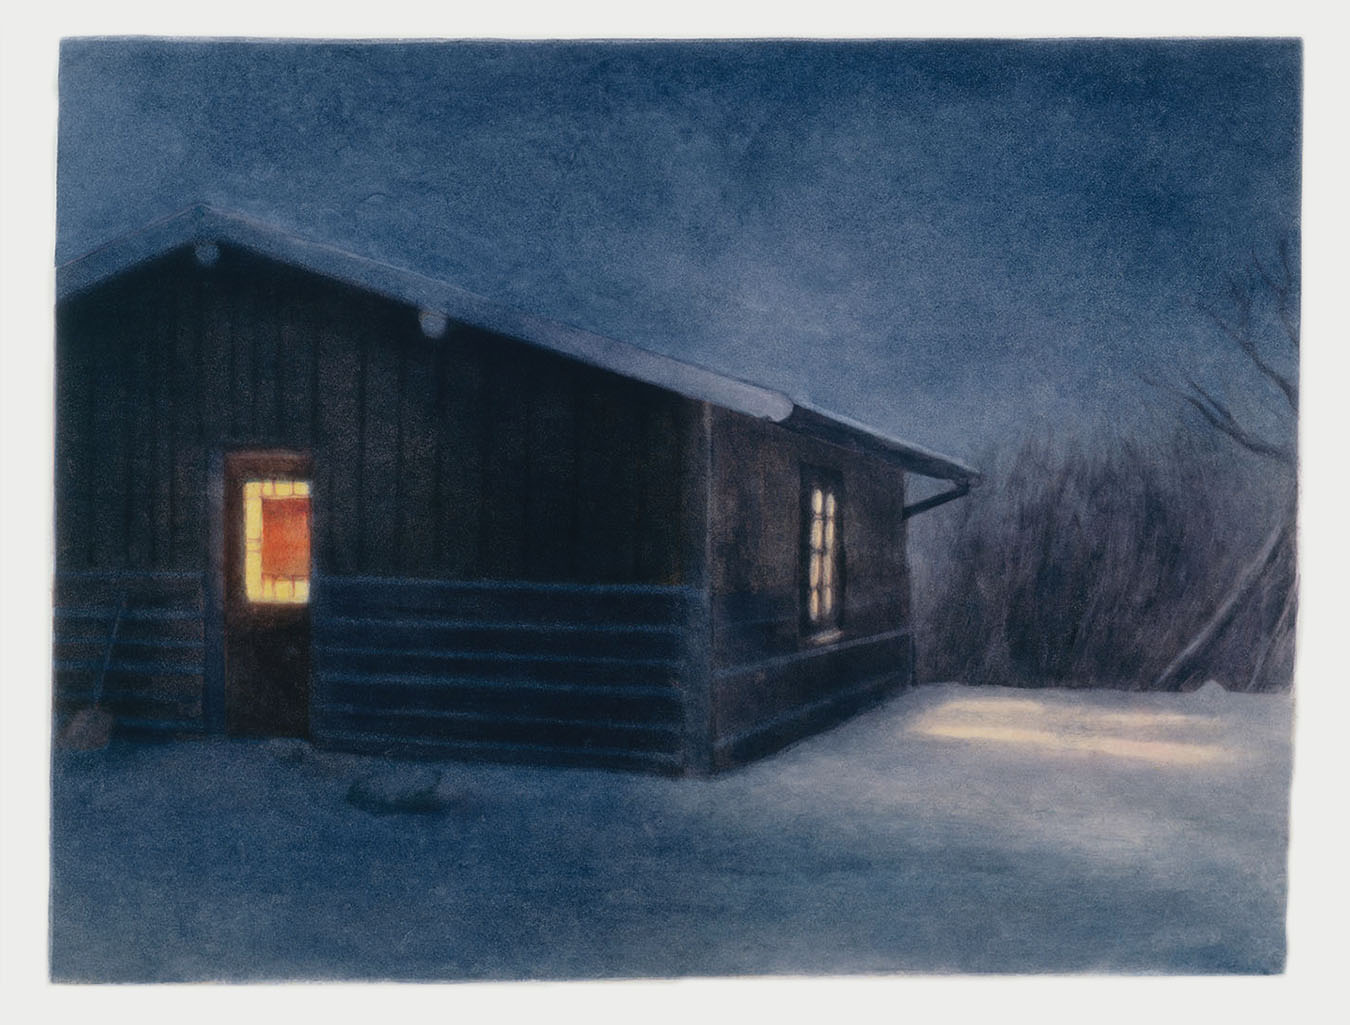 Cold Night Wyoming  2003 monotype 18 x 25 in.